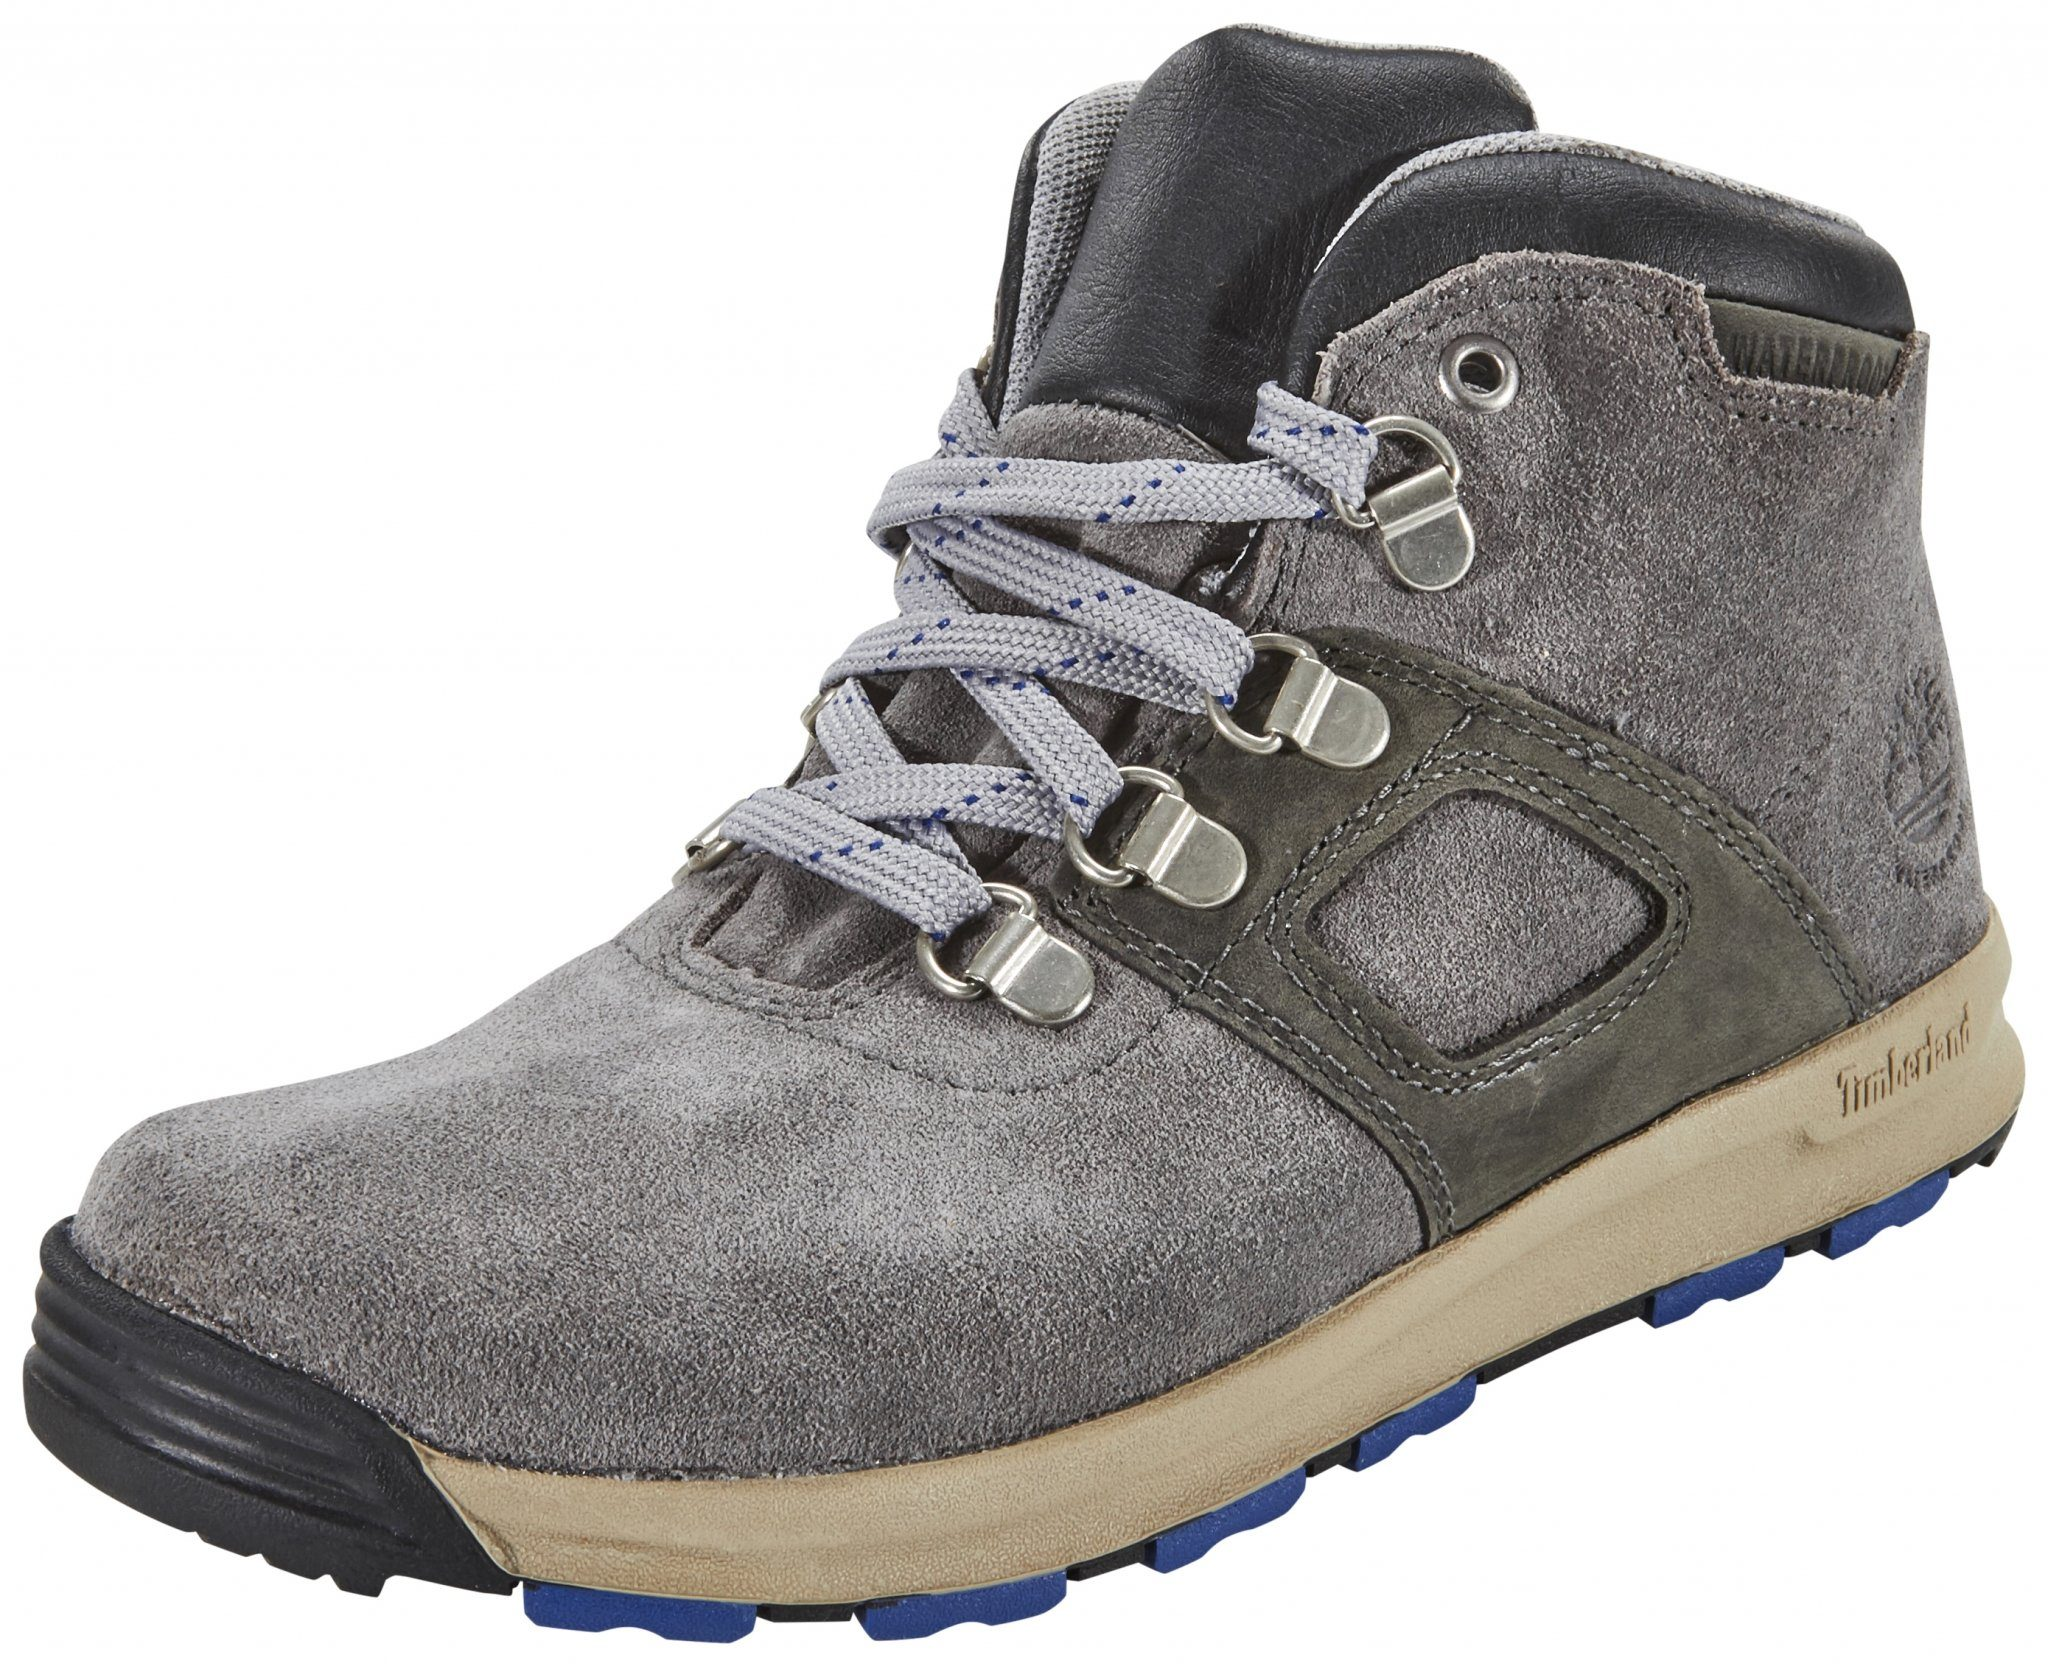 TIMBERLAND Kletterschuh »Timberland GT Scramble Shoes Juniors WP Leather«